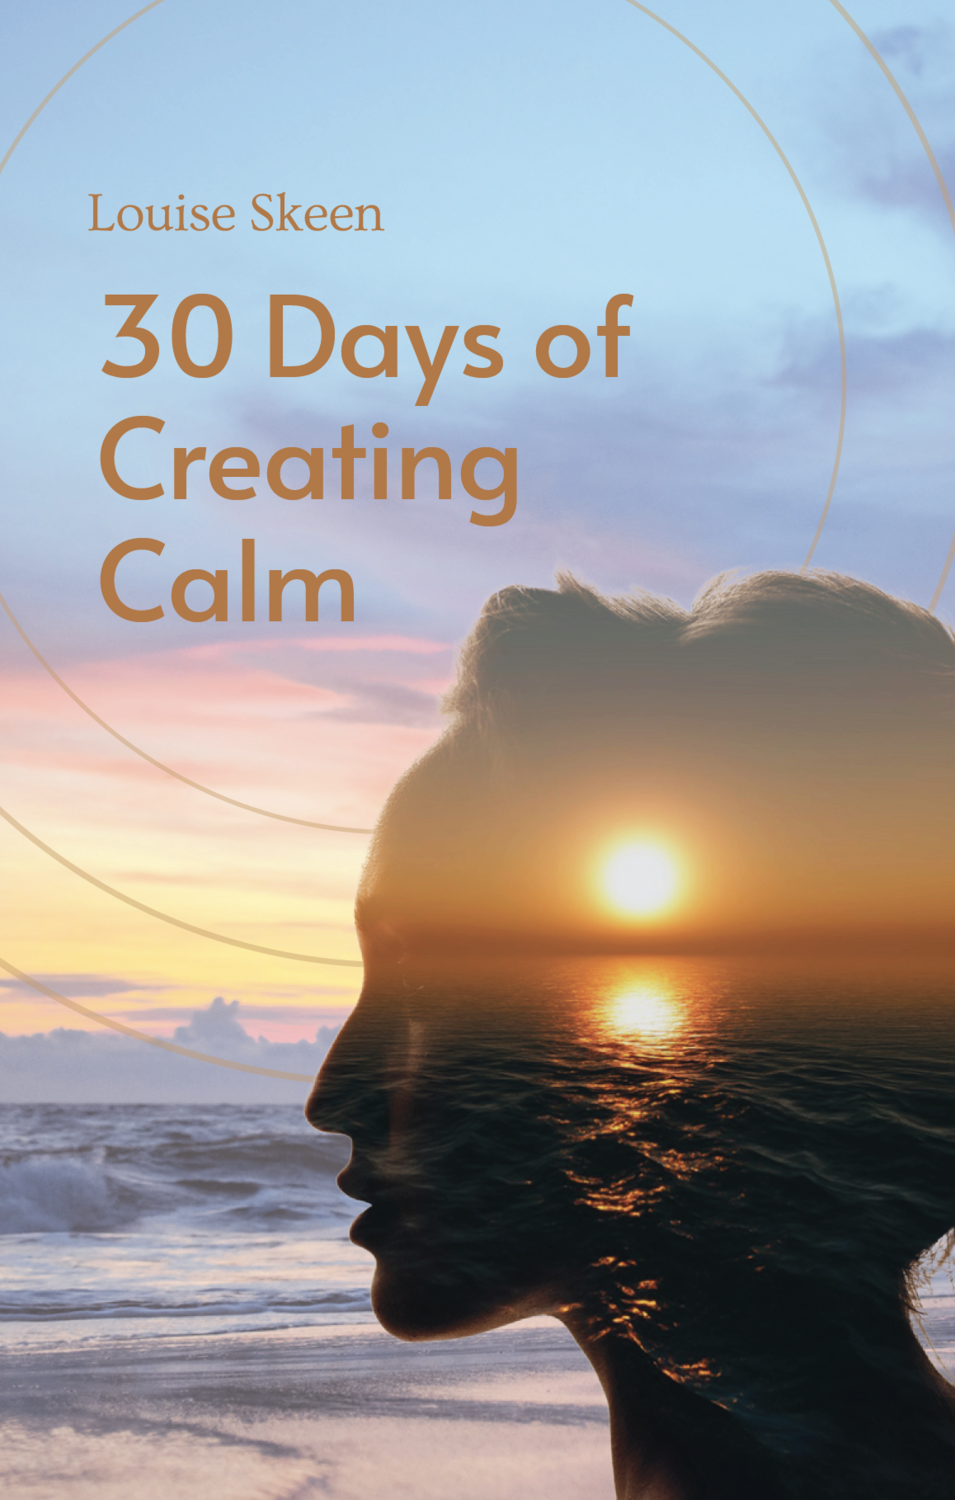 30 Days of Creating Calm: A Guide Toward Inner Peace